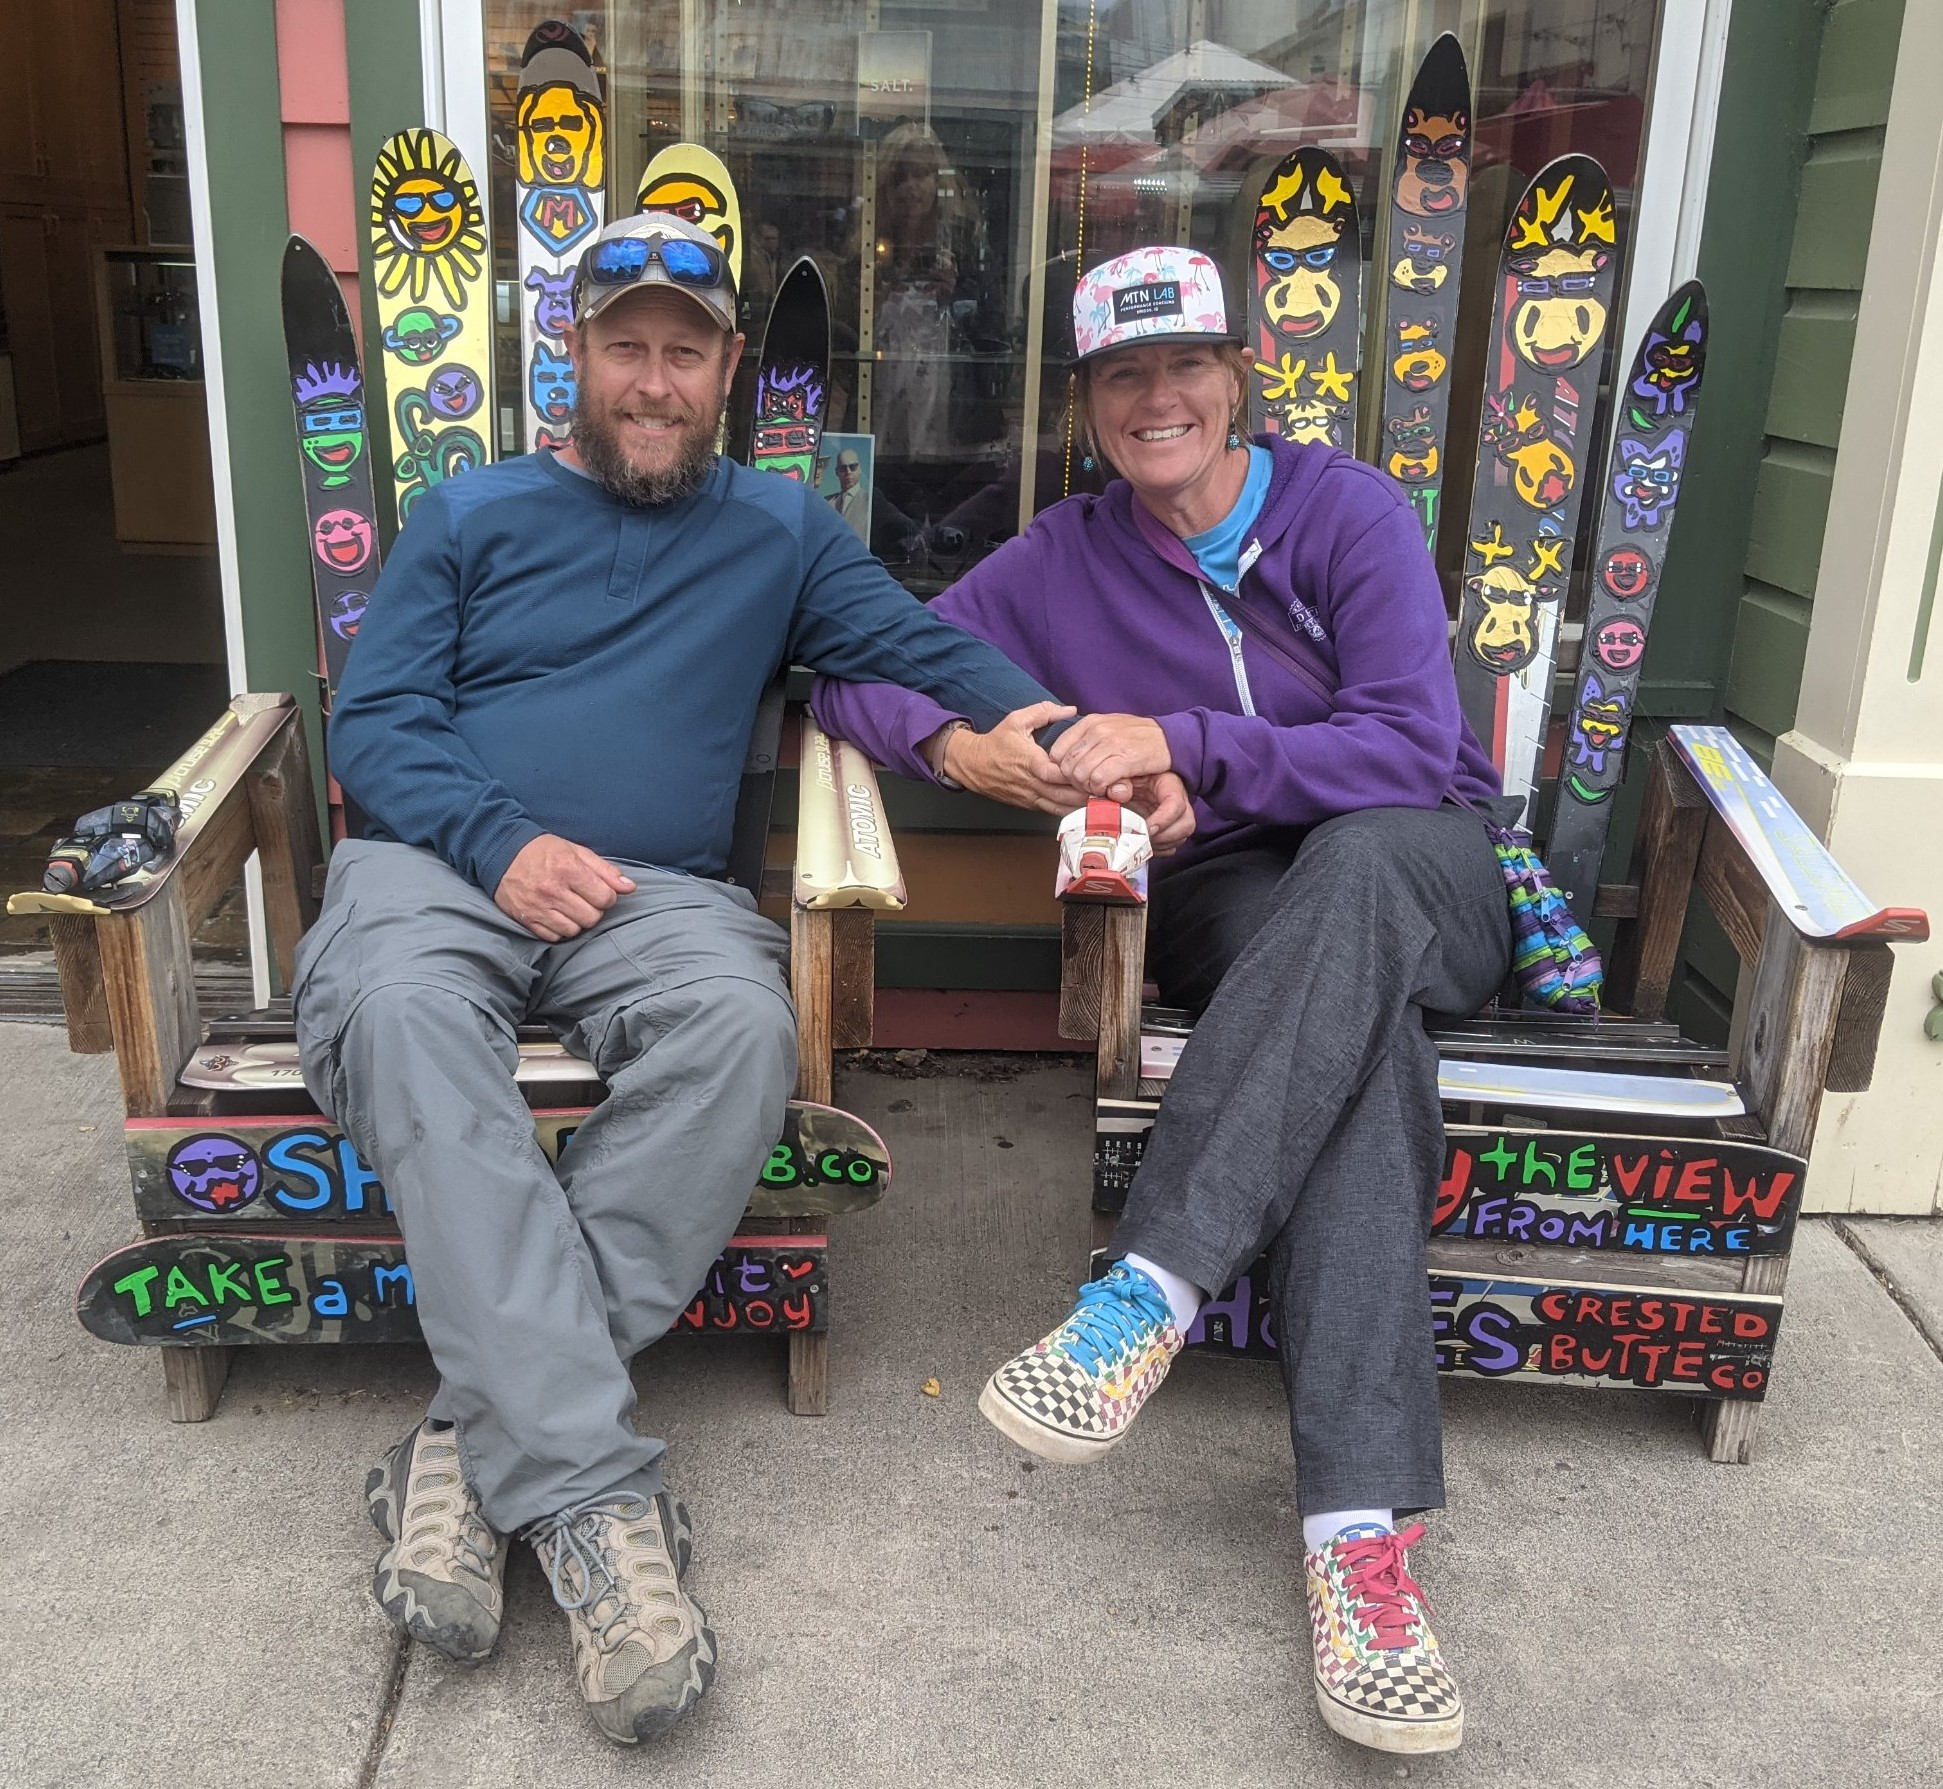 Laurel Darren (right) enjoys some personal time in Colorado this summer while sitting in some unique chairs with longtime boyfriend Brett.